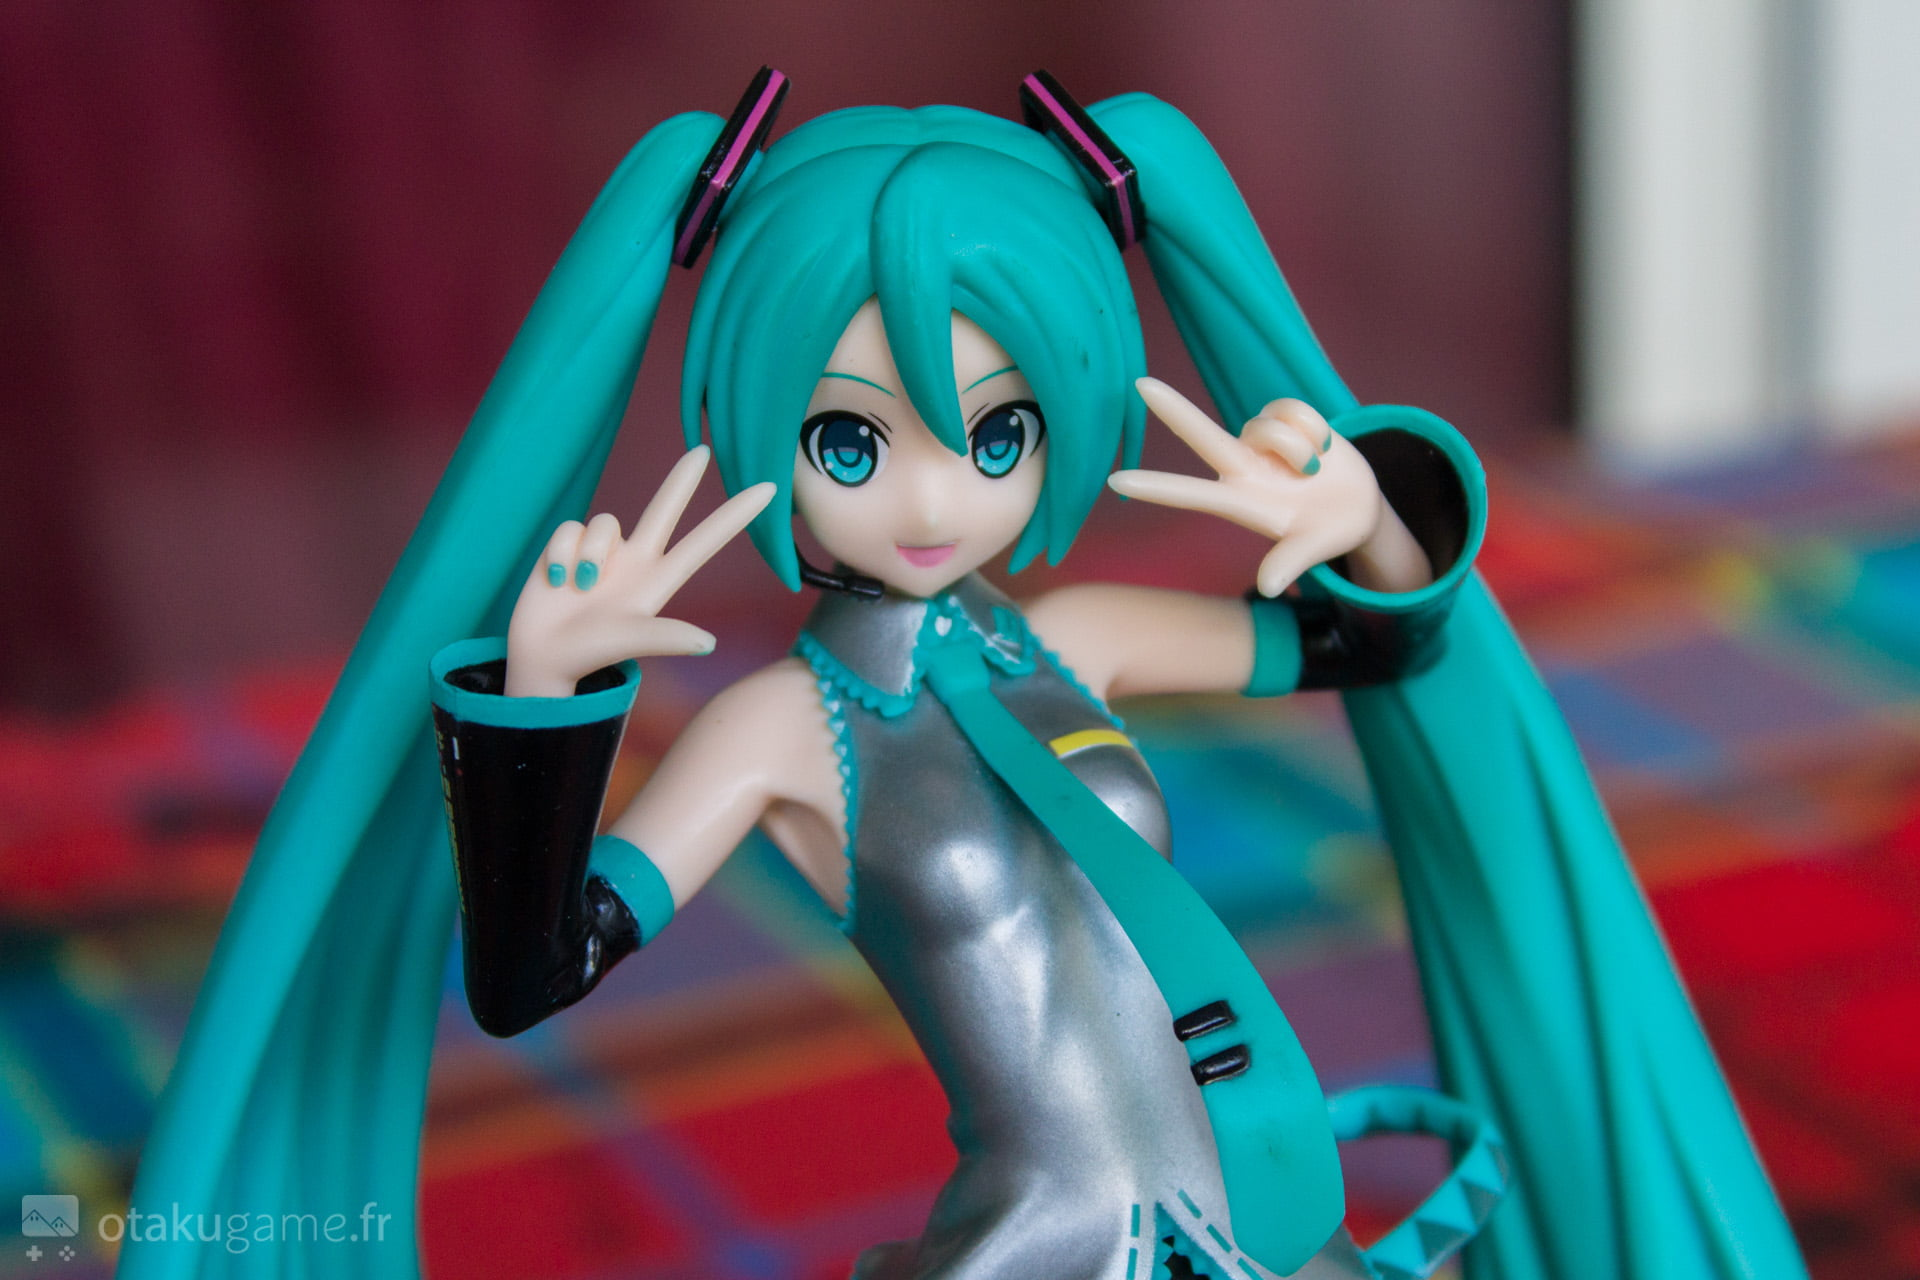 Test : La sublime figurine de Hatsune Miku de Project Diva ...